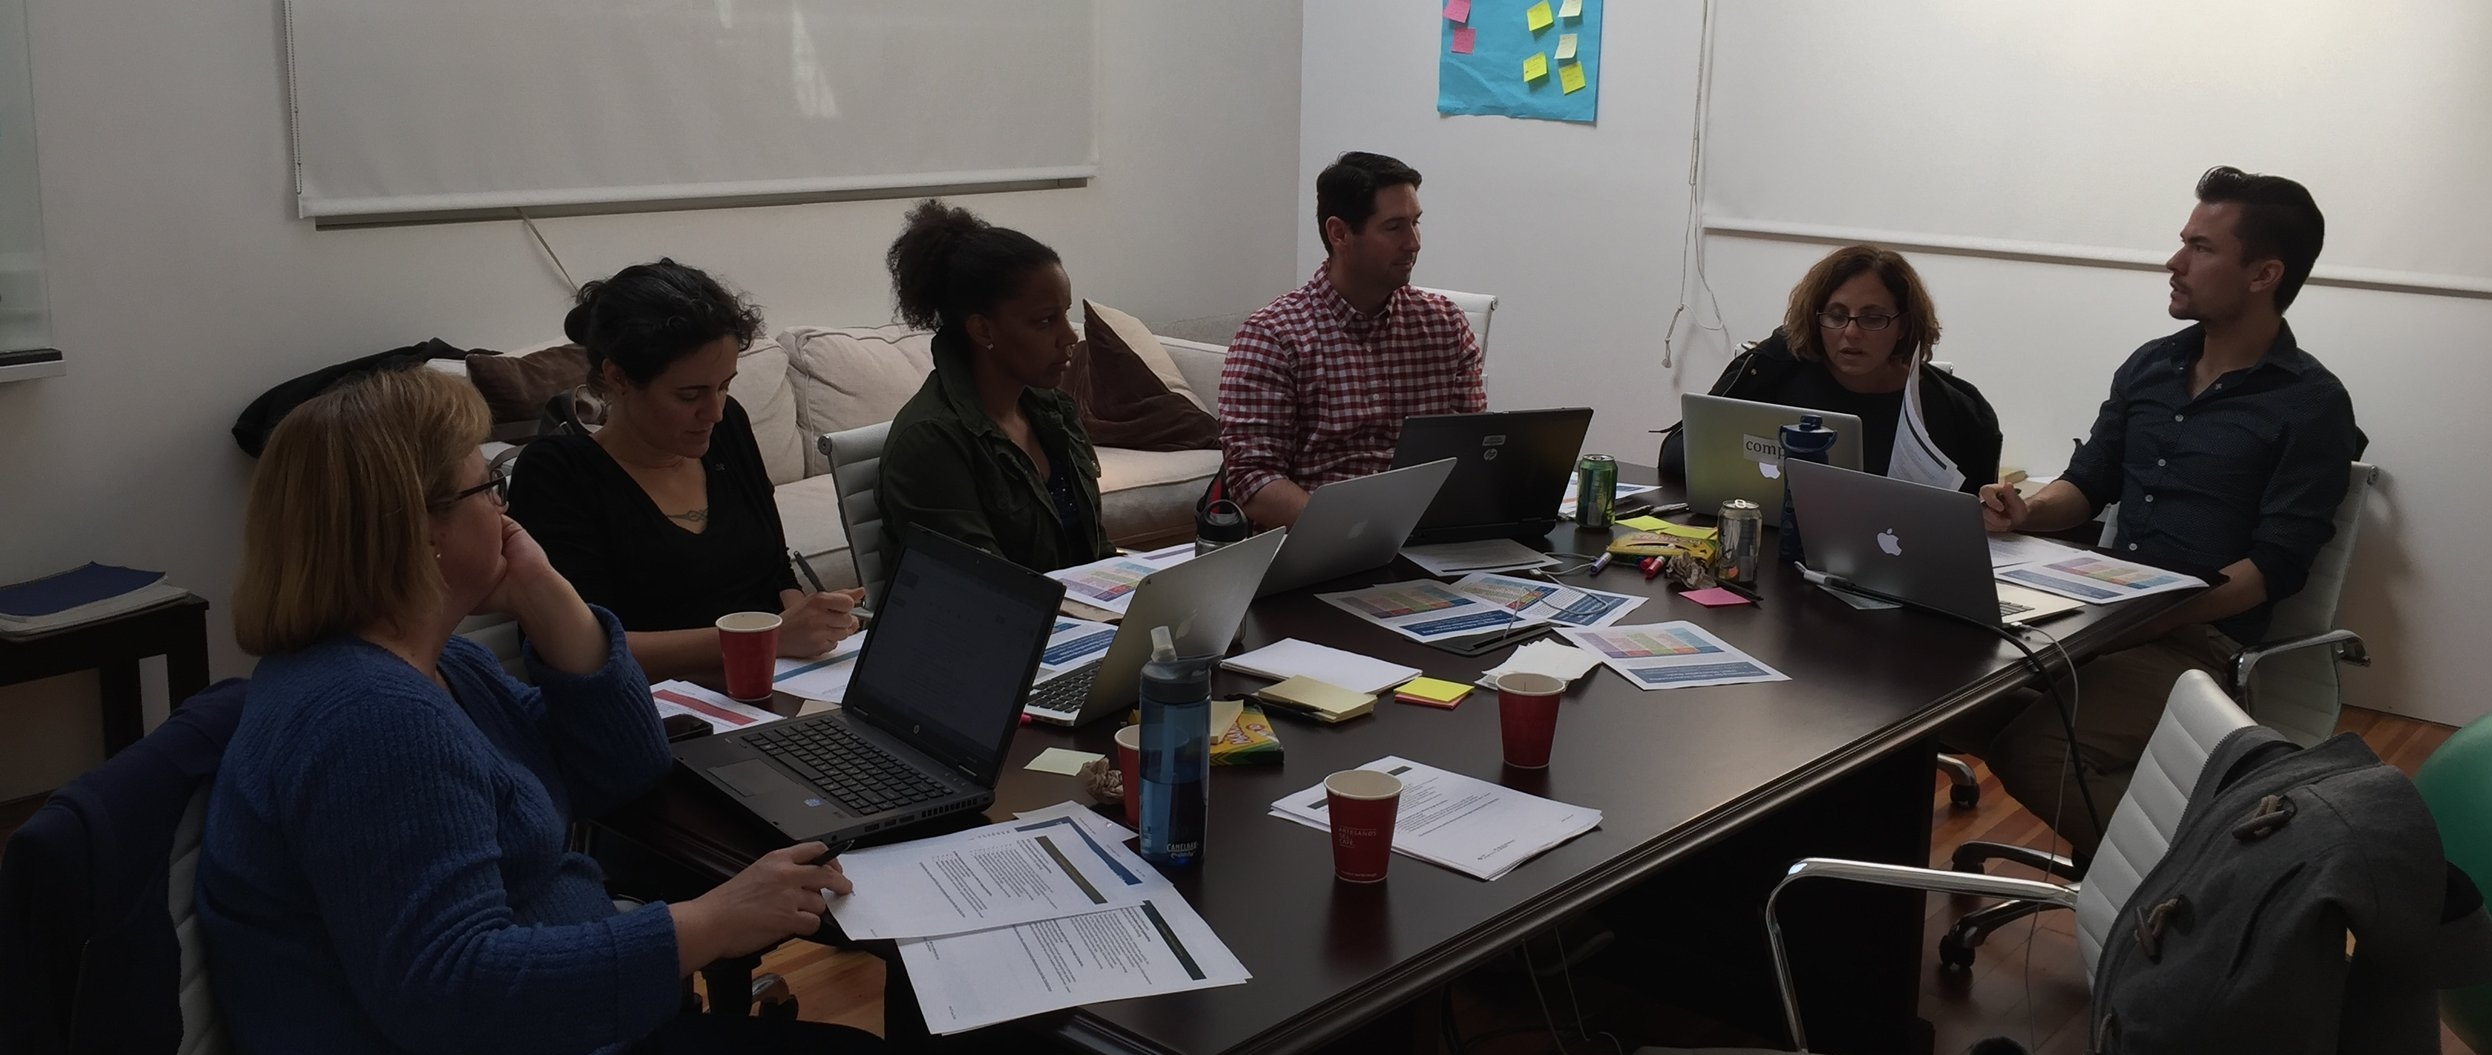 Trellis Mentor Fellows at Desmos HQ for our November work day, rehearsing mentoring with one another.